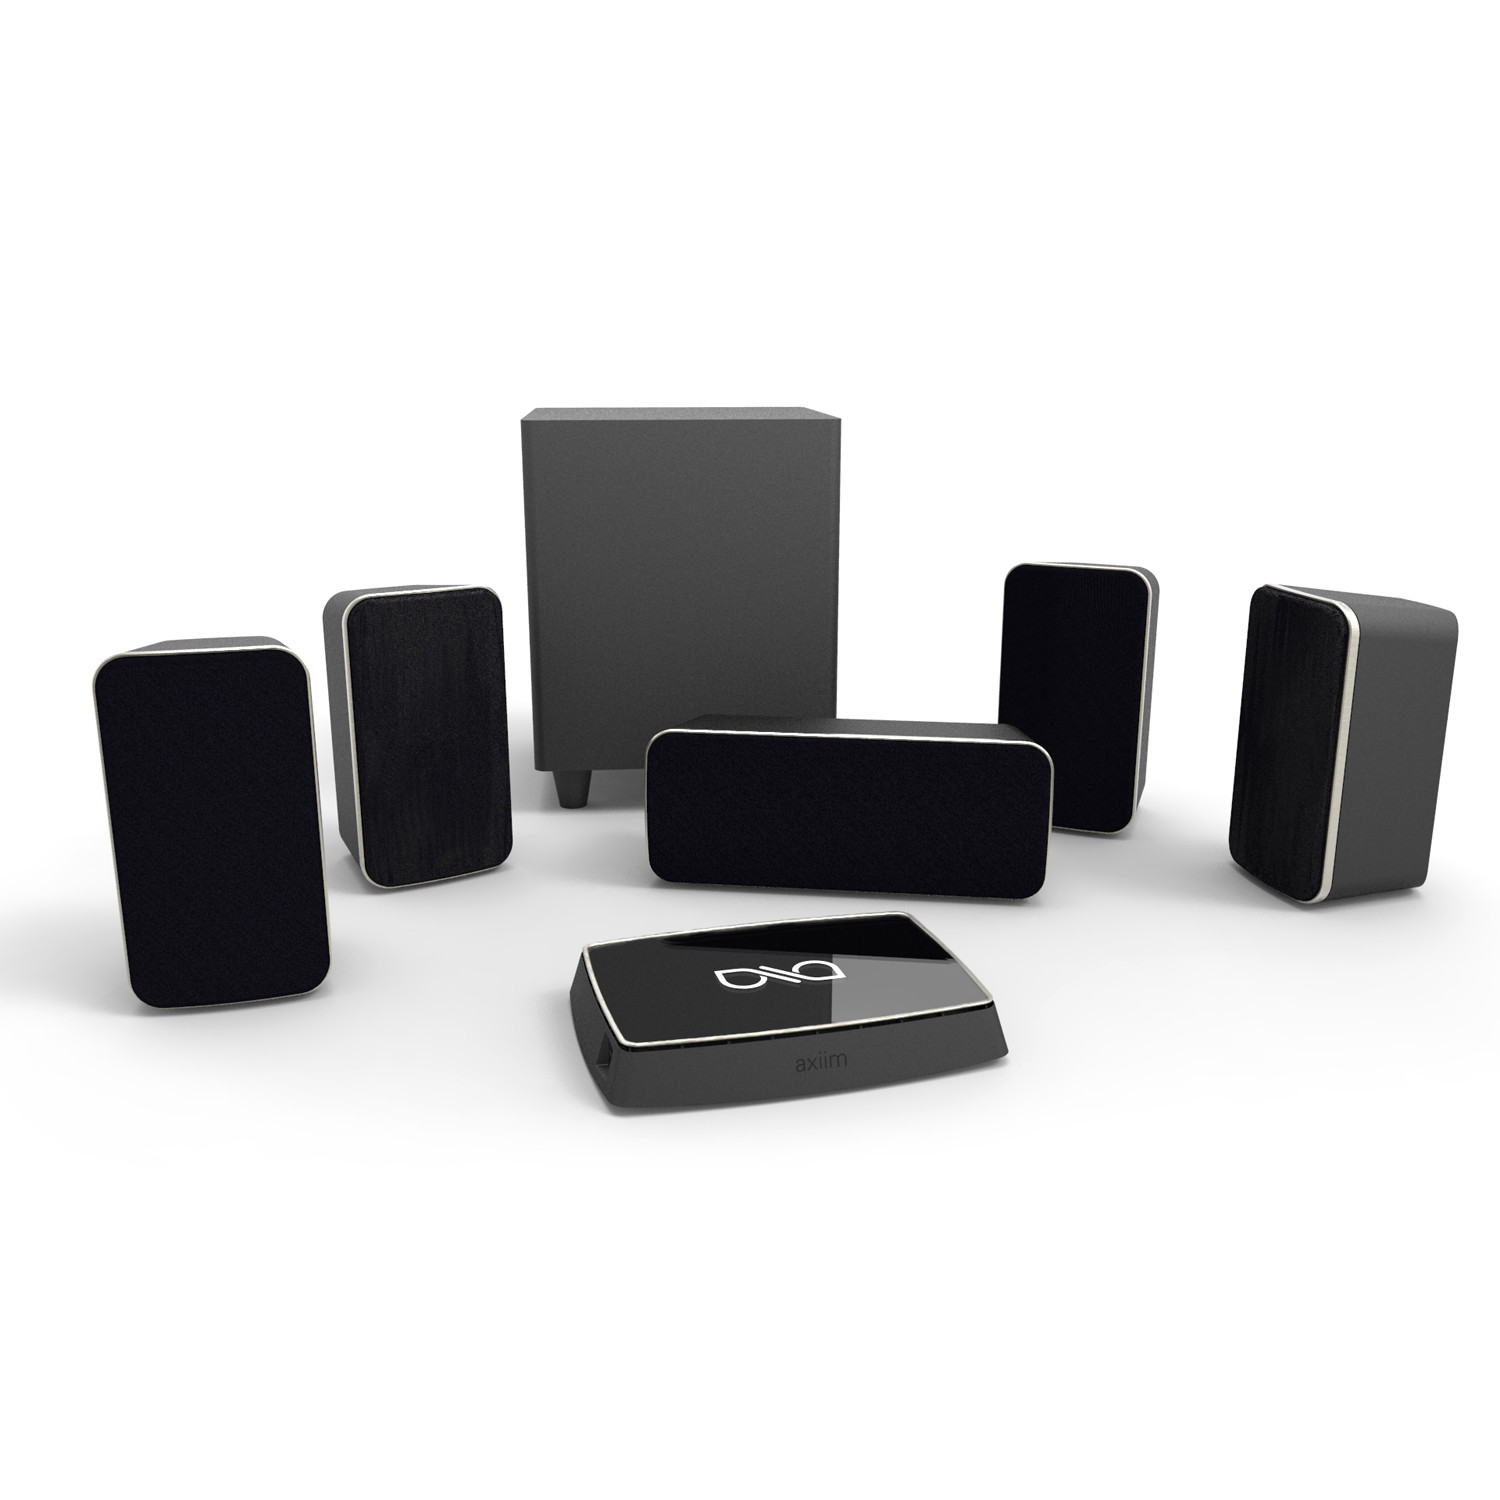 HD Wireless 5.1 Home Theater System - Axiim - Touch of Modern